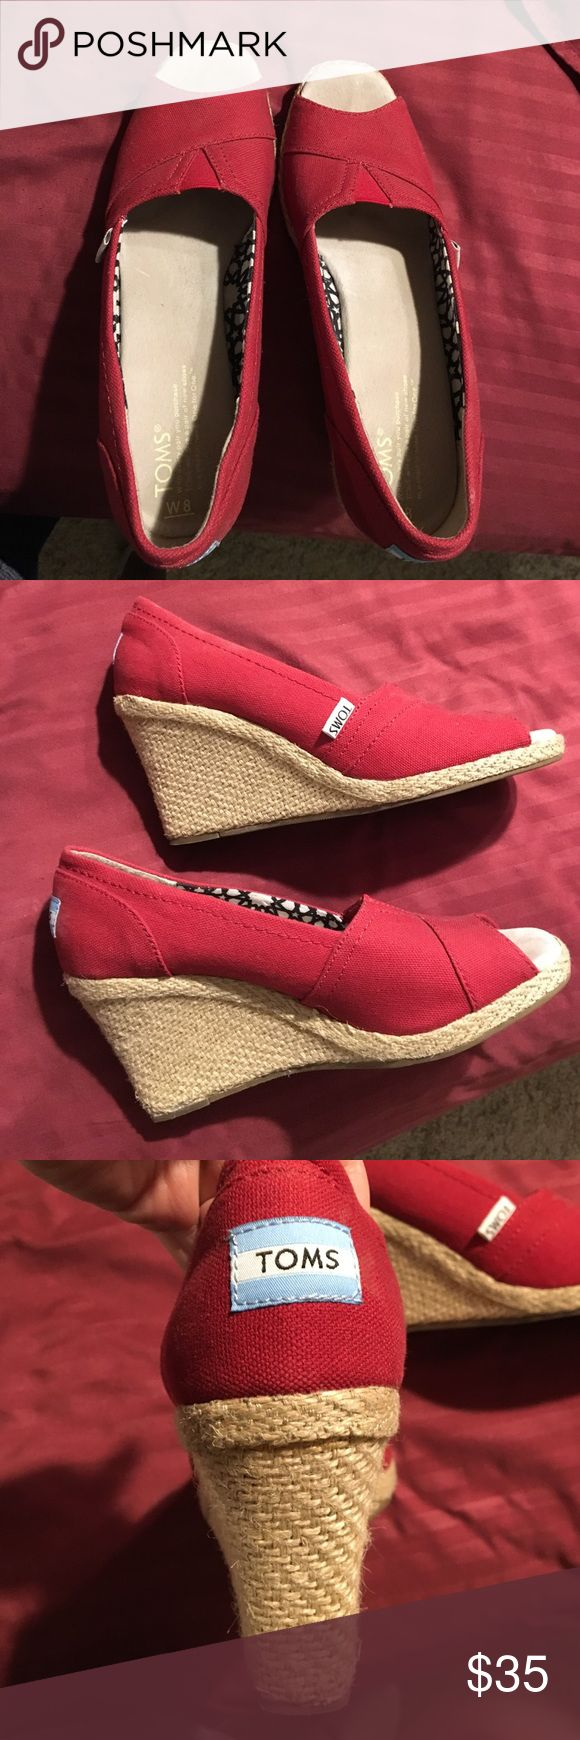 TOMS wedges super clean. Red toms wedges TOMS Shoes Wedges